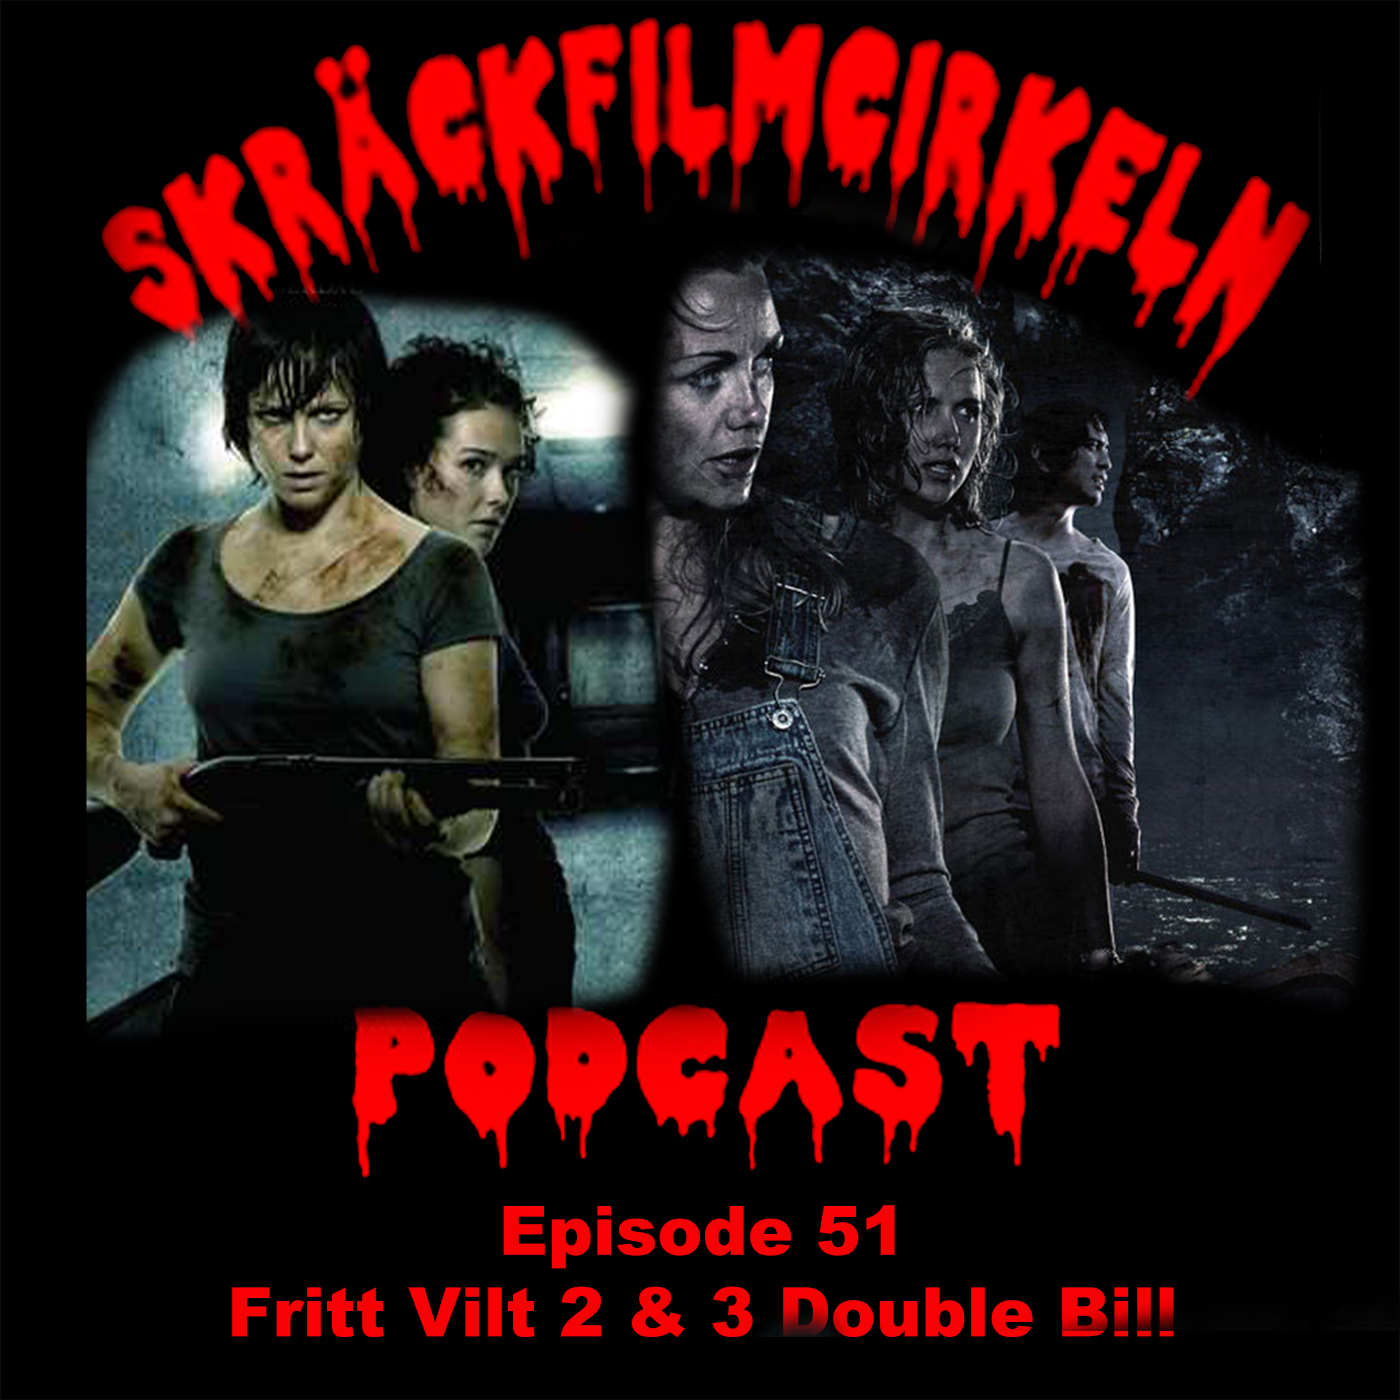 Episode 51 – Fritt Vilt 2 & 3 Double Bill